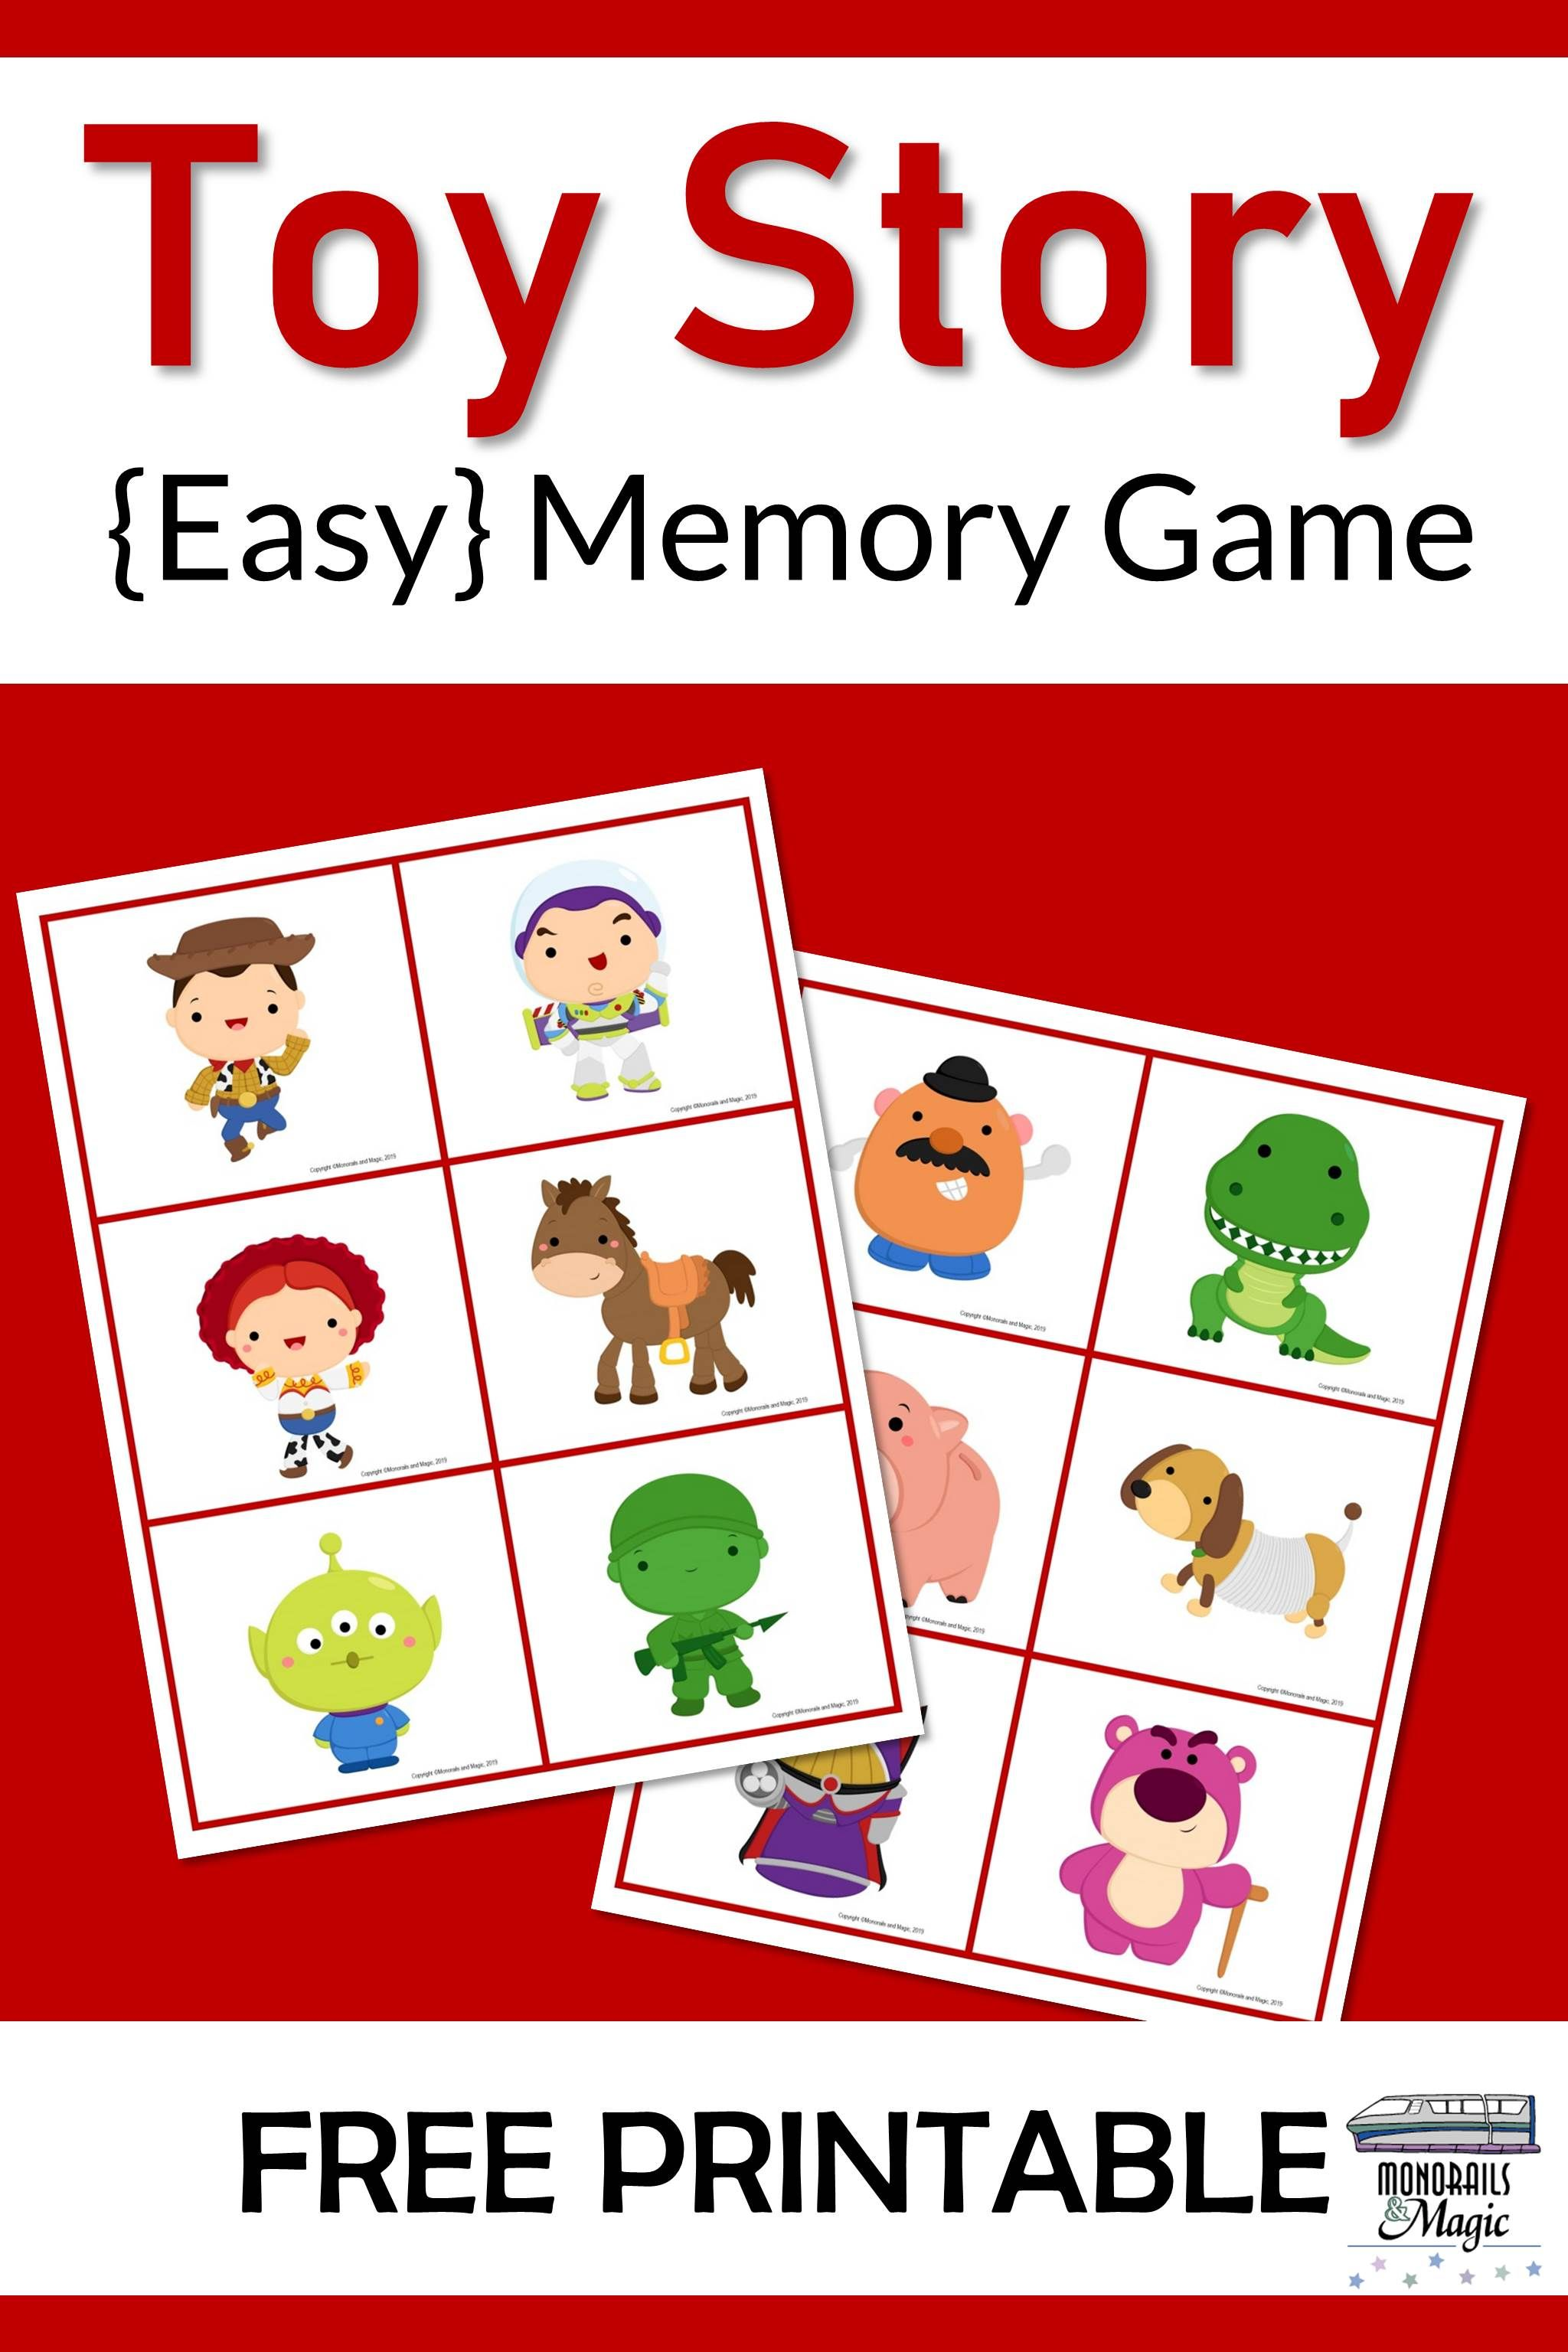 Toy Story Memory Game Free Printable Story games for